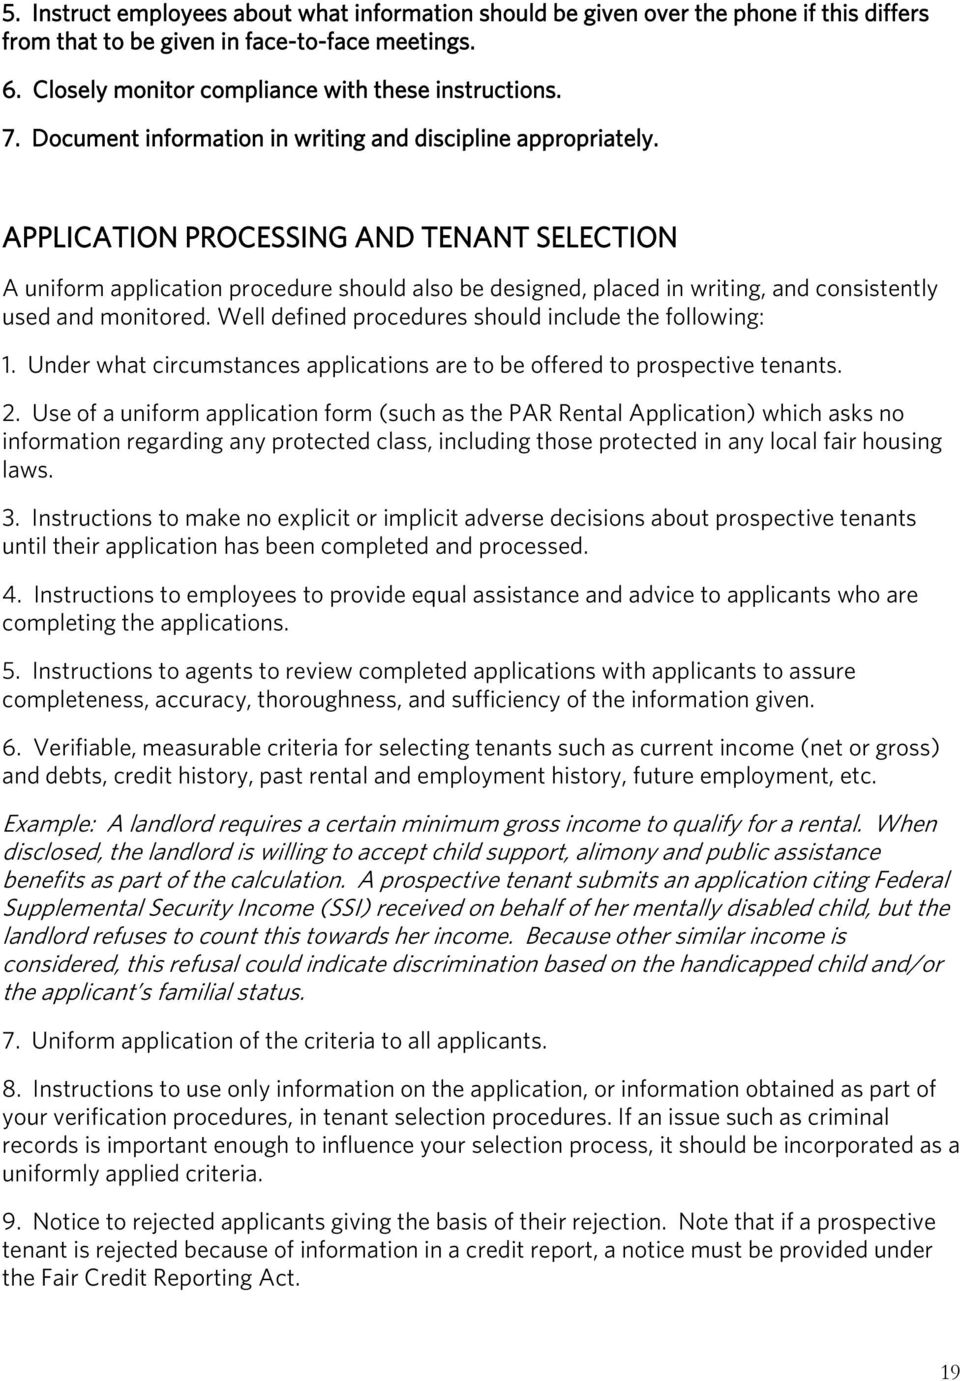 APPLICATION PROCESSING AND TENANT SELECTION A uniform application procedure should also be designed, placed in writing, and consistently used and monitored.